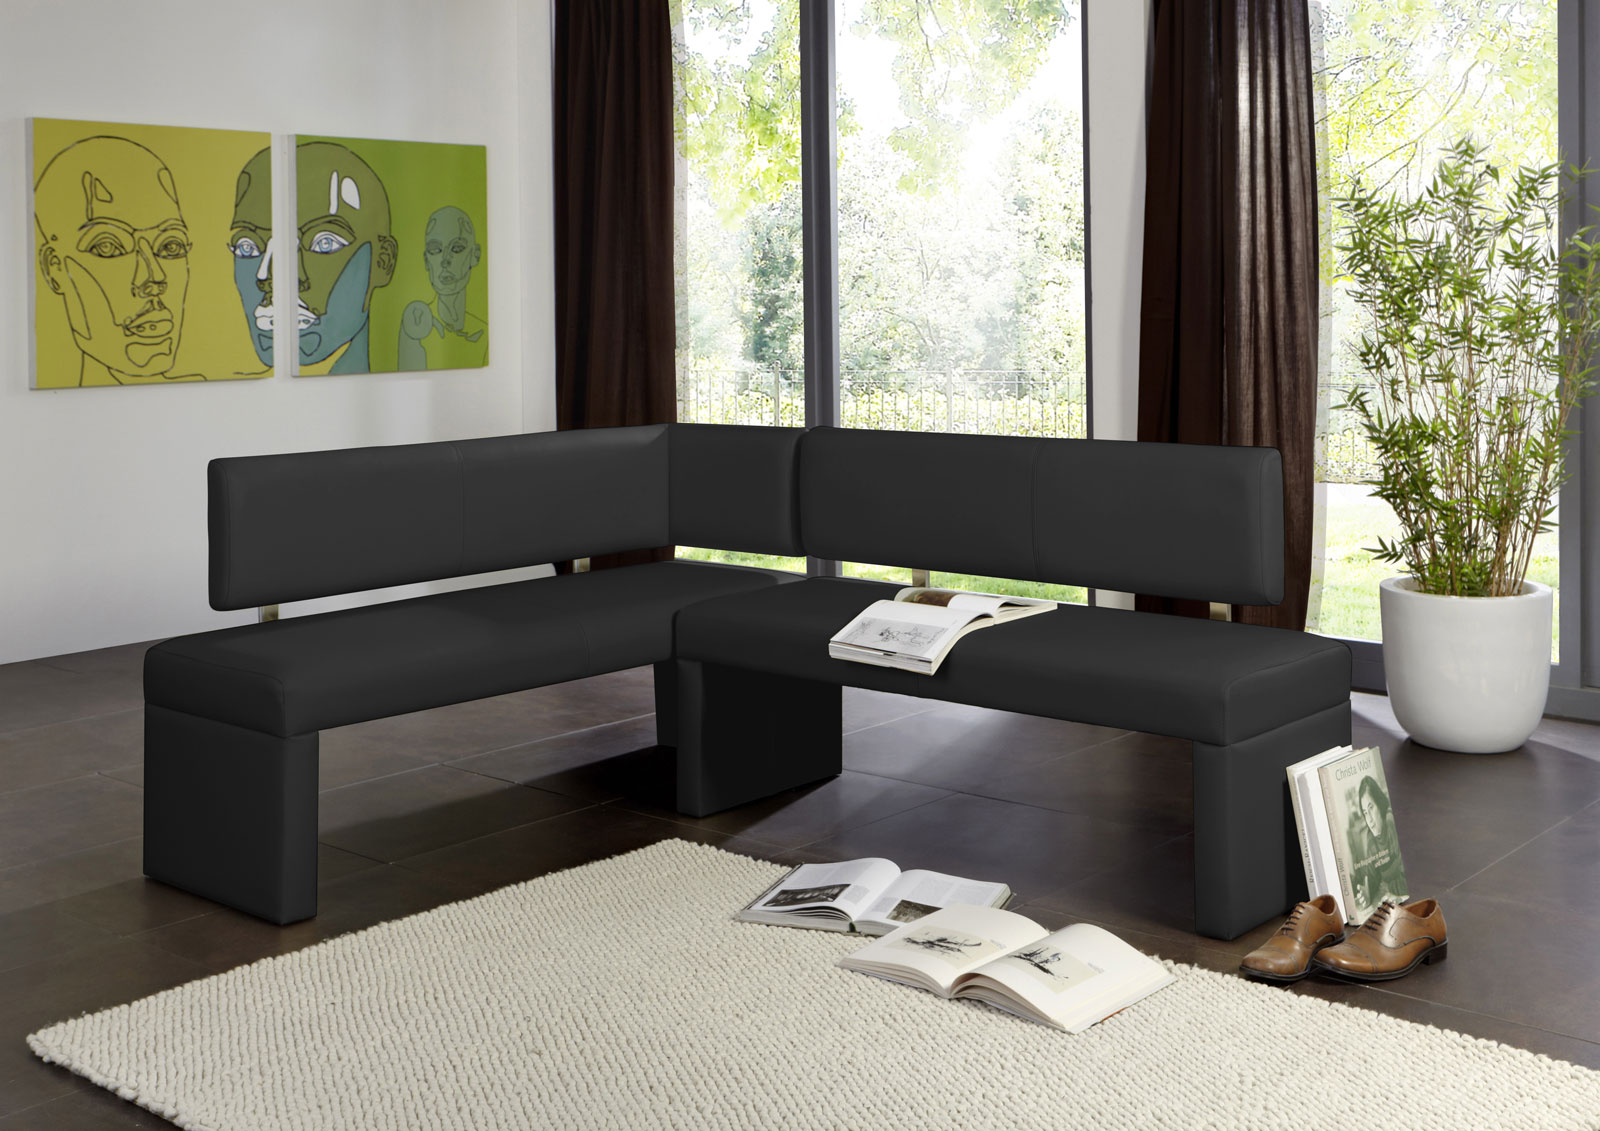 sam eckbank recyceltes leder 195 x 152 cm schwarz sofia. Black Bedroom Furniture Sets. Home Design Ideas